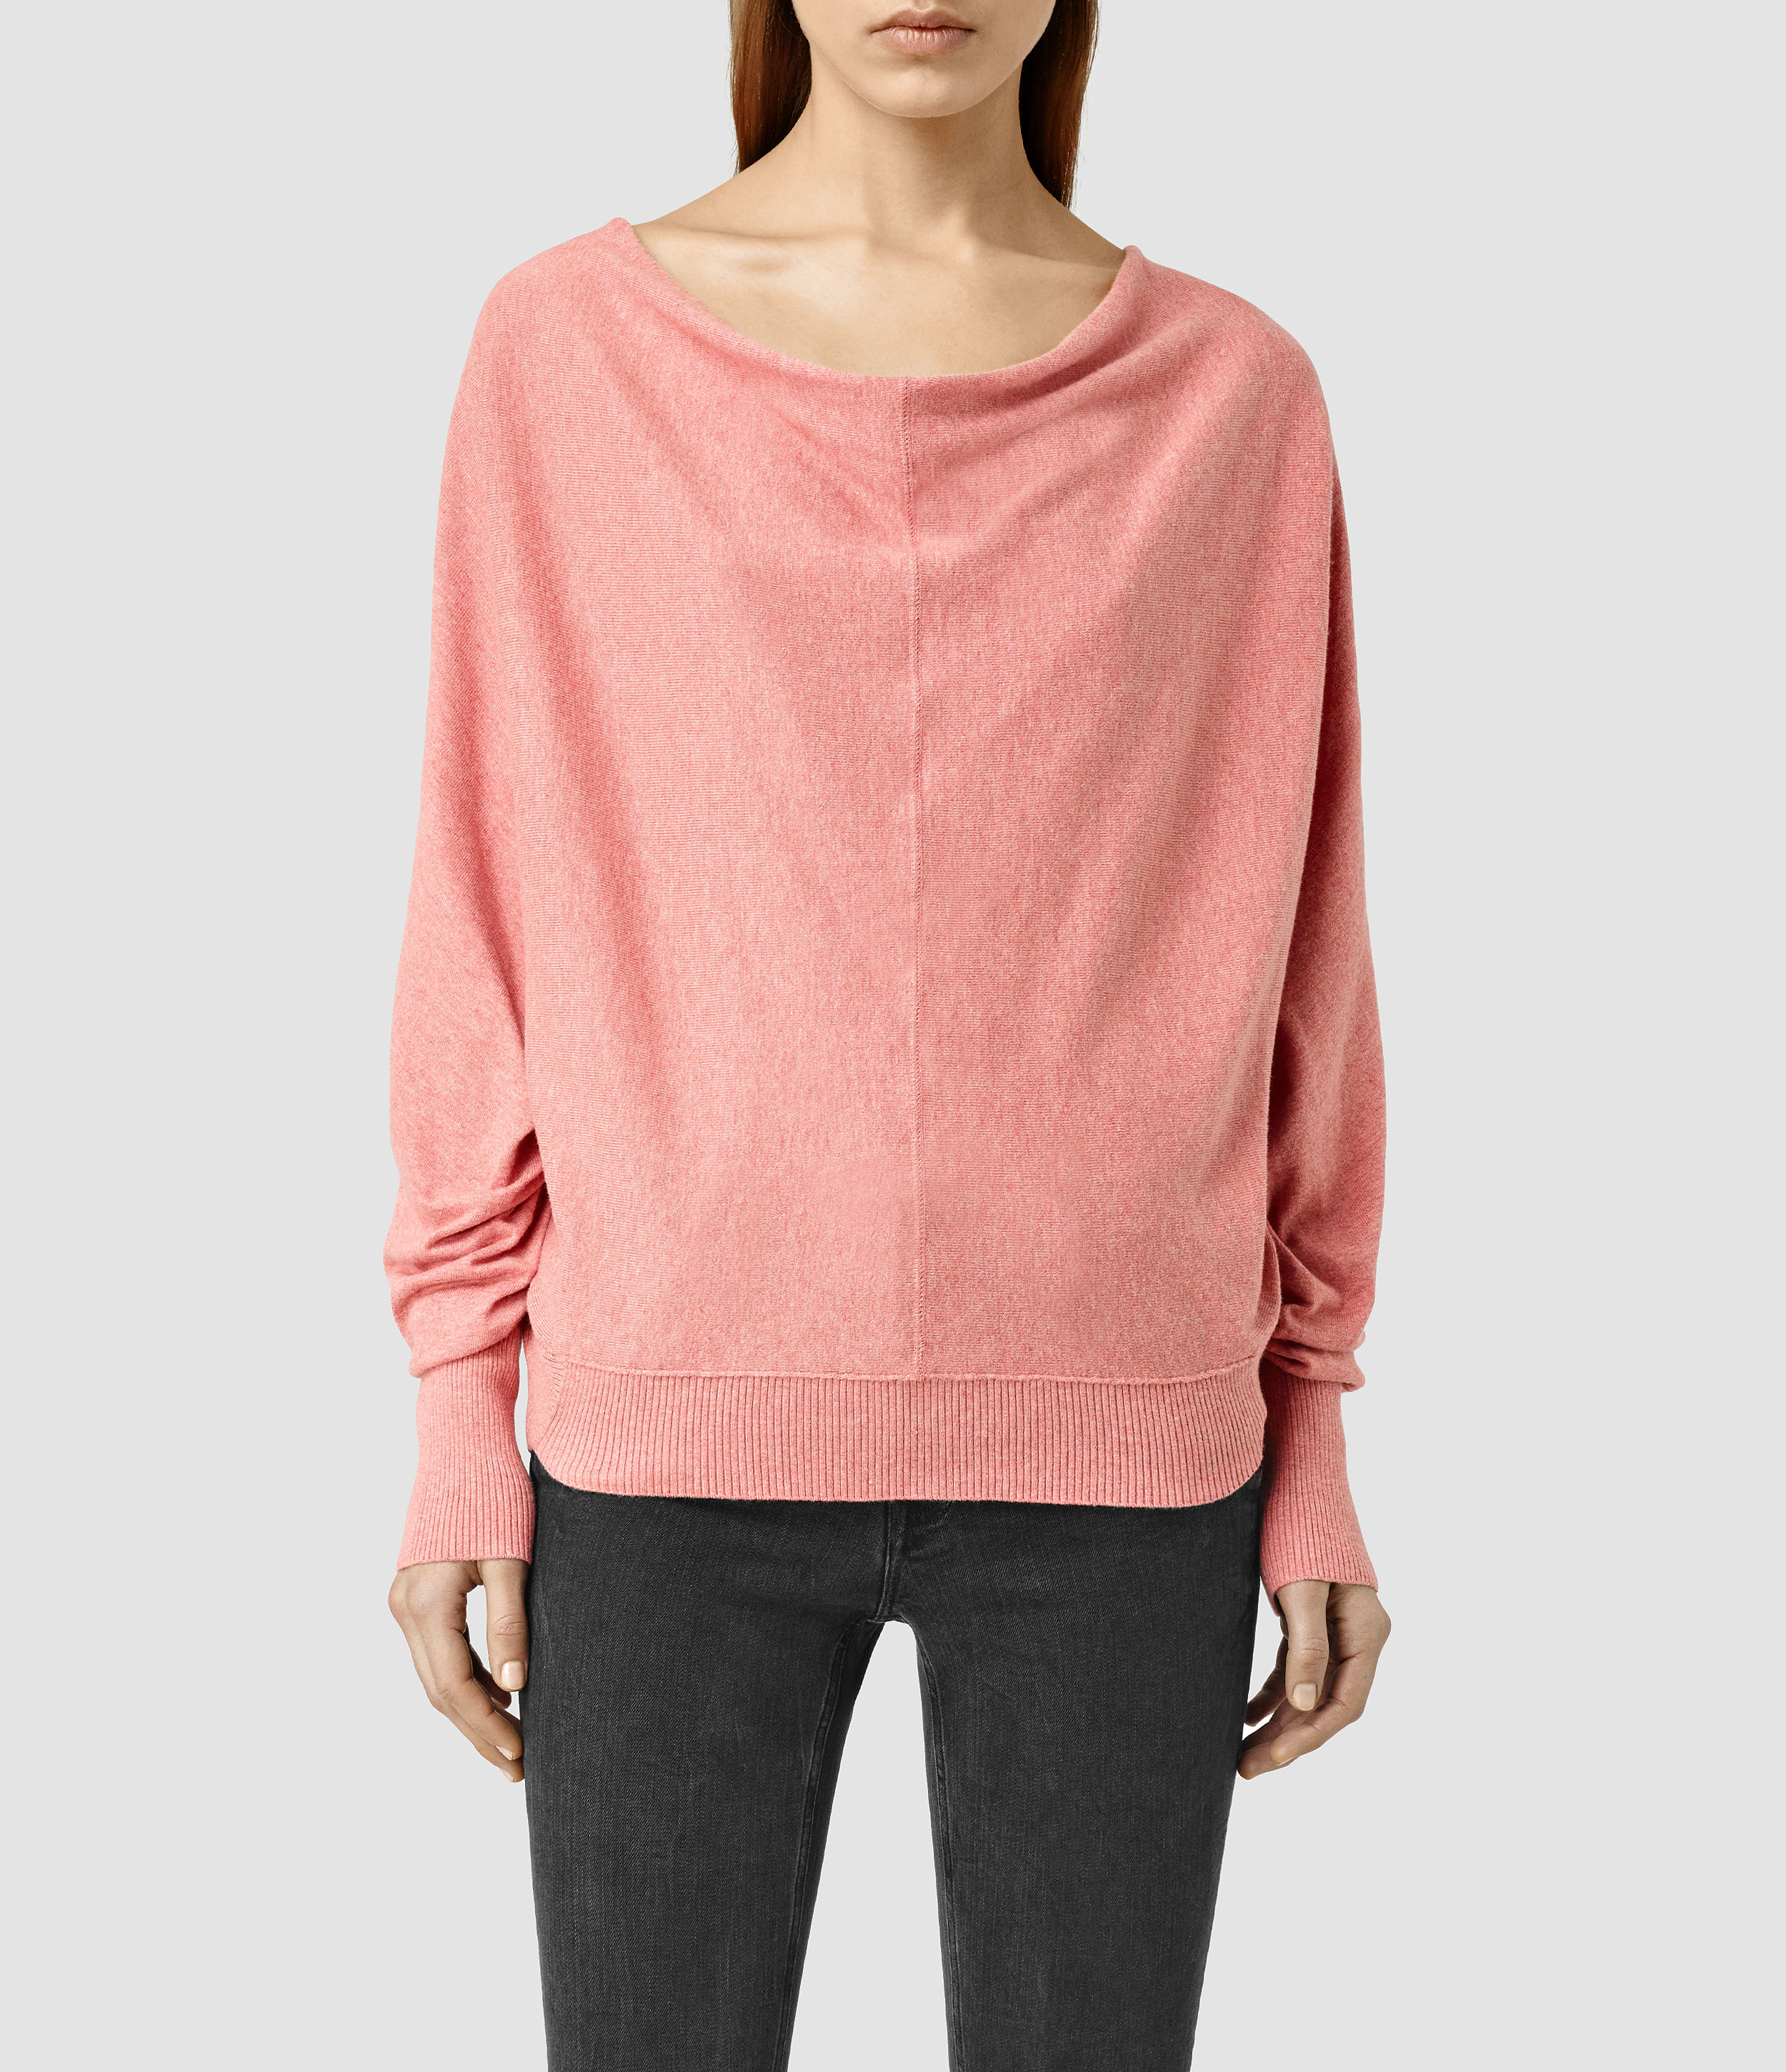 Allsaints Elgar Cowl Neck Sweater Usa Usa in Pink | Lyst